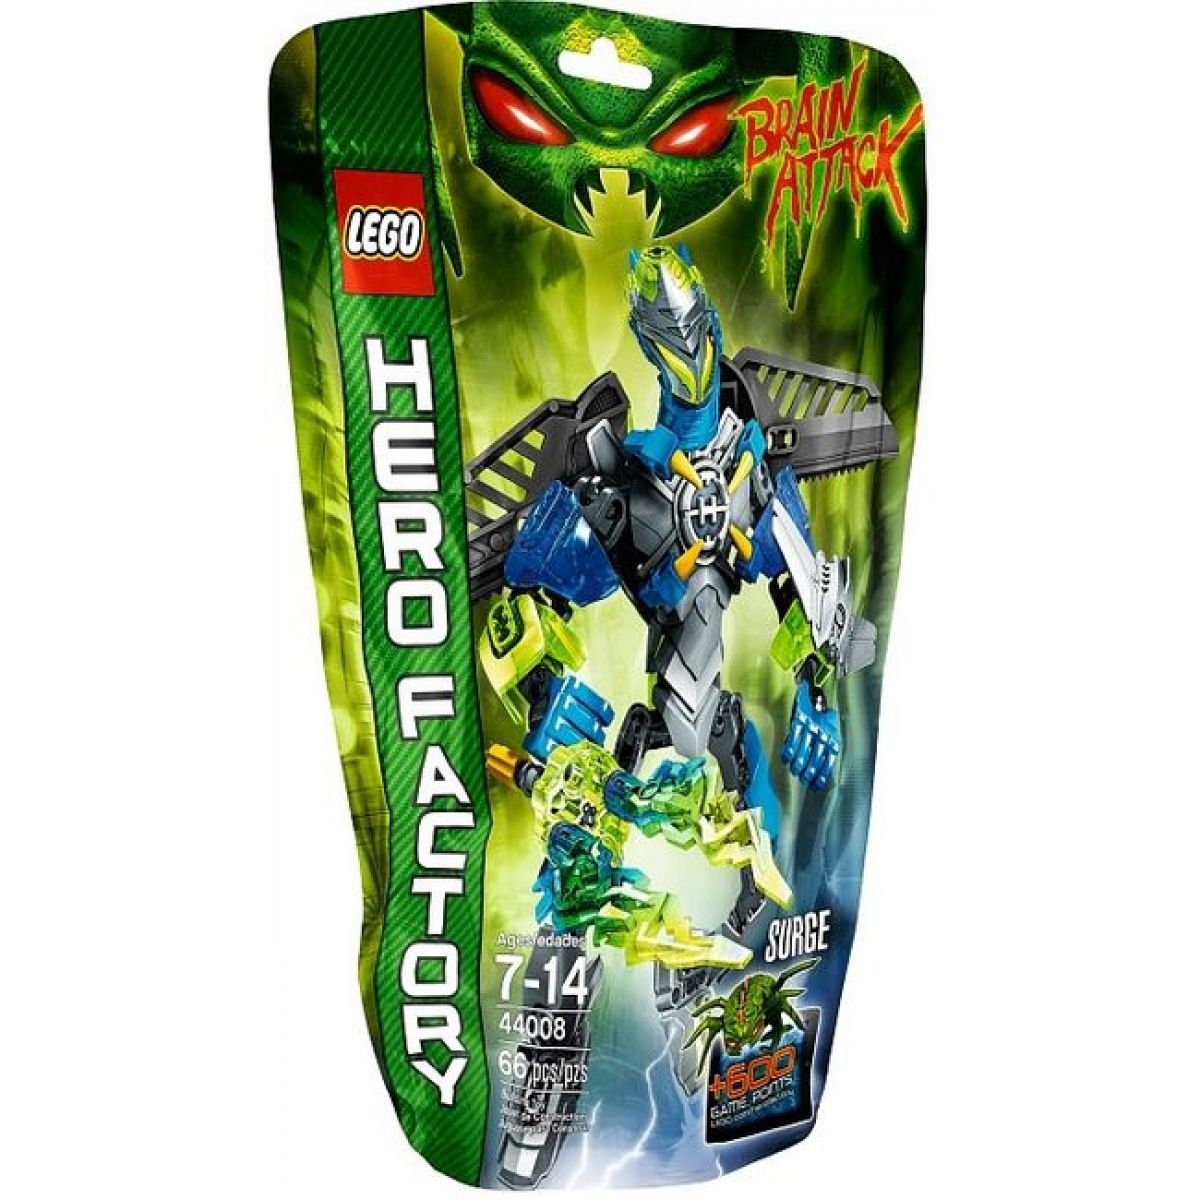 LEGO Hero Factory 44008 Surge